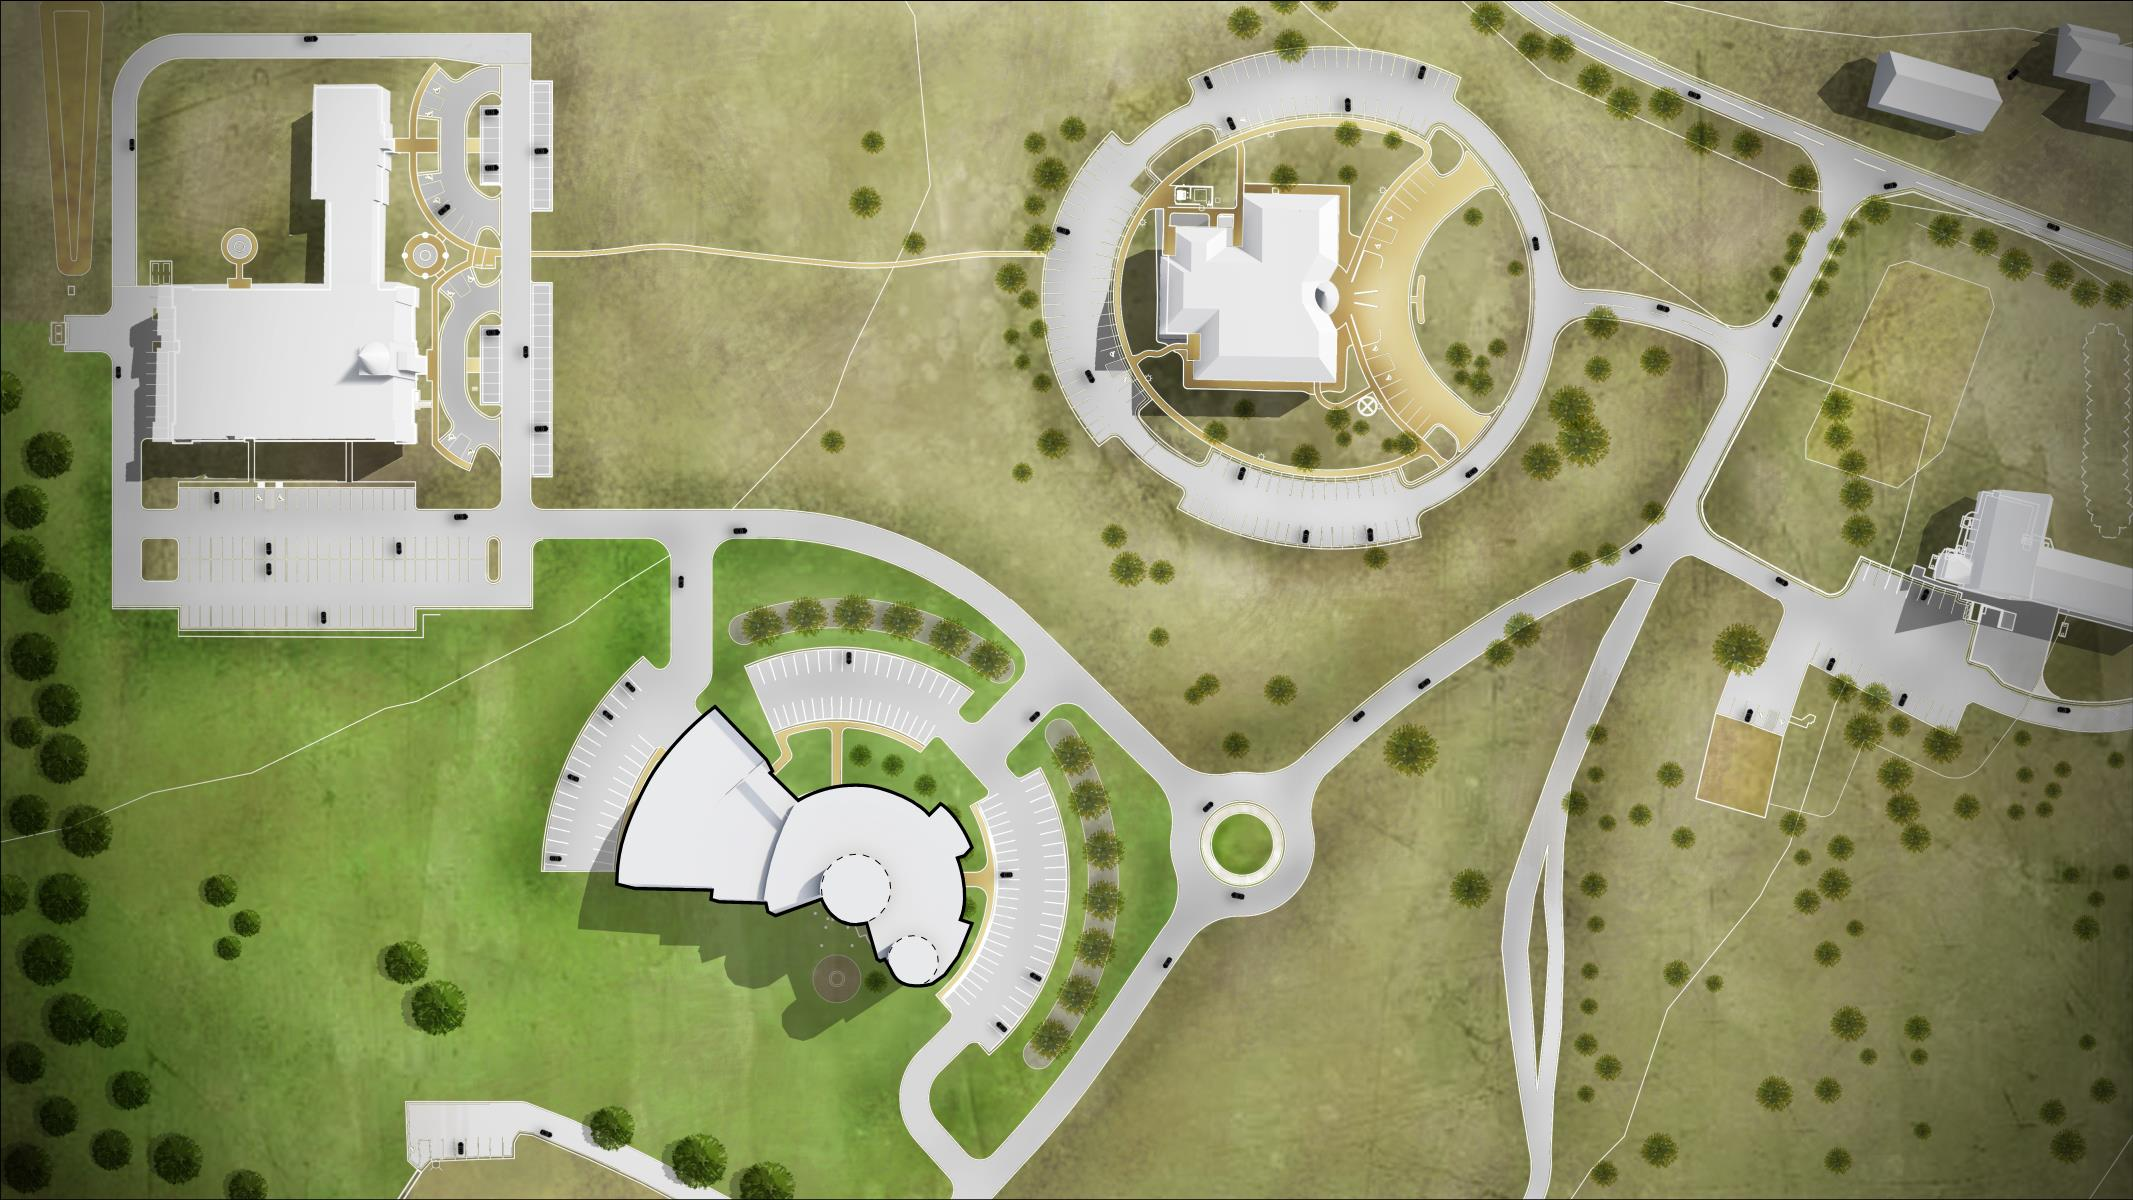 Master Plan render of the Pokagon Justice Center, worked on  Sketchup, Lumion, and Photoshop